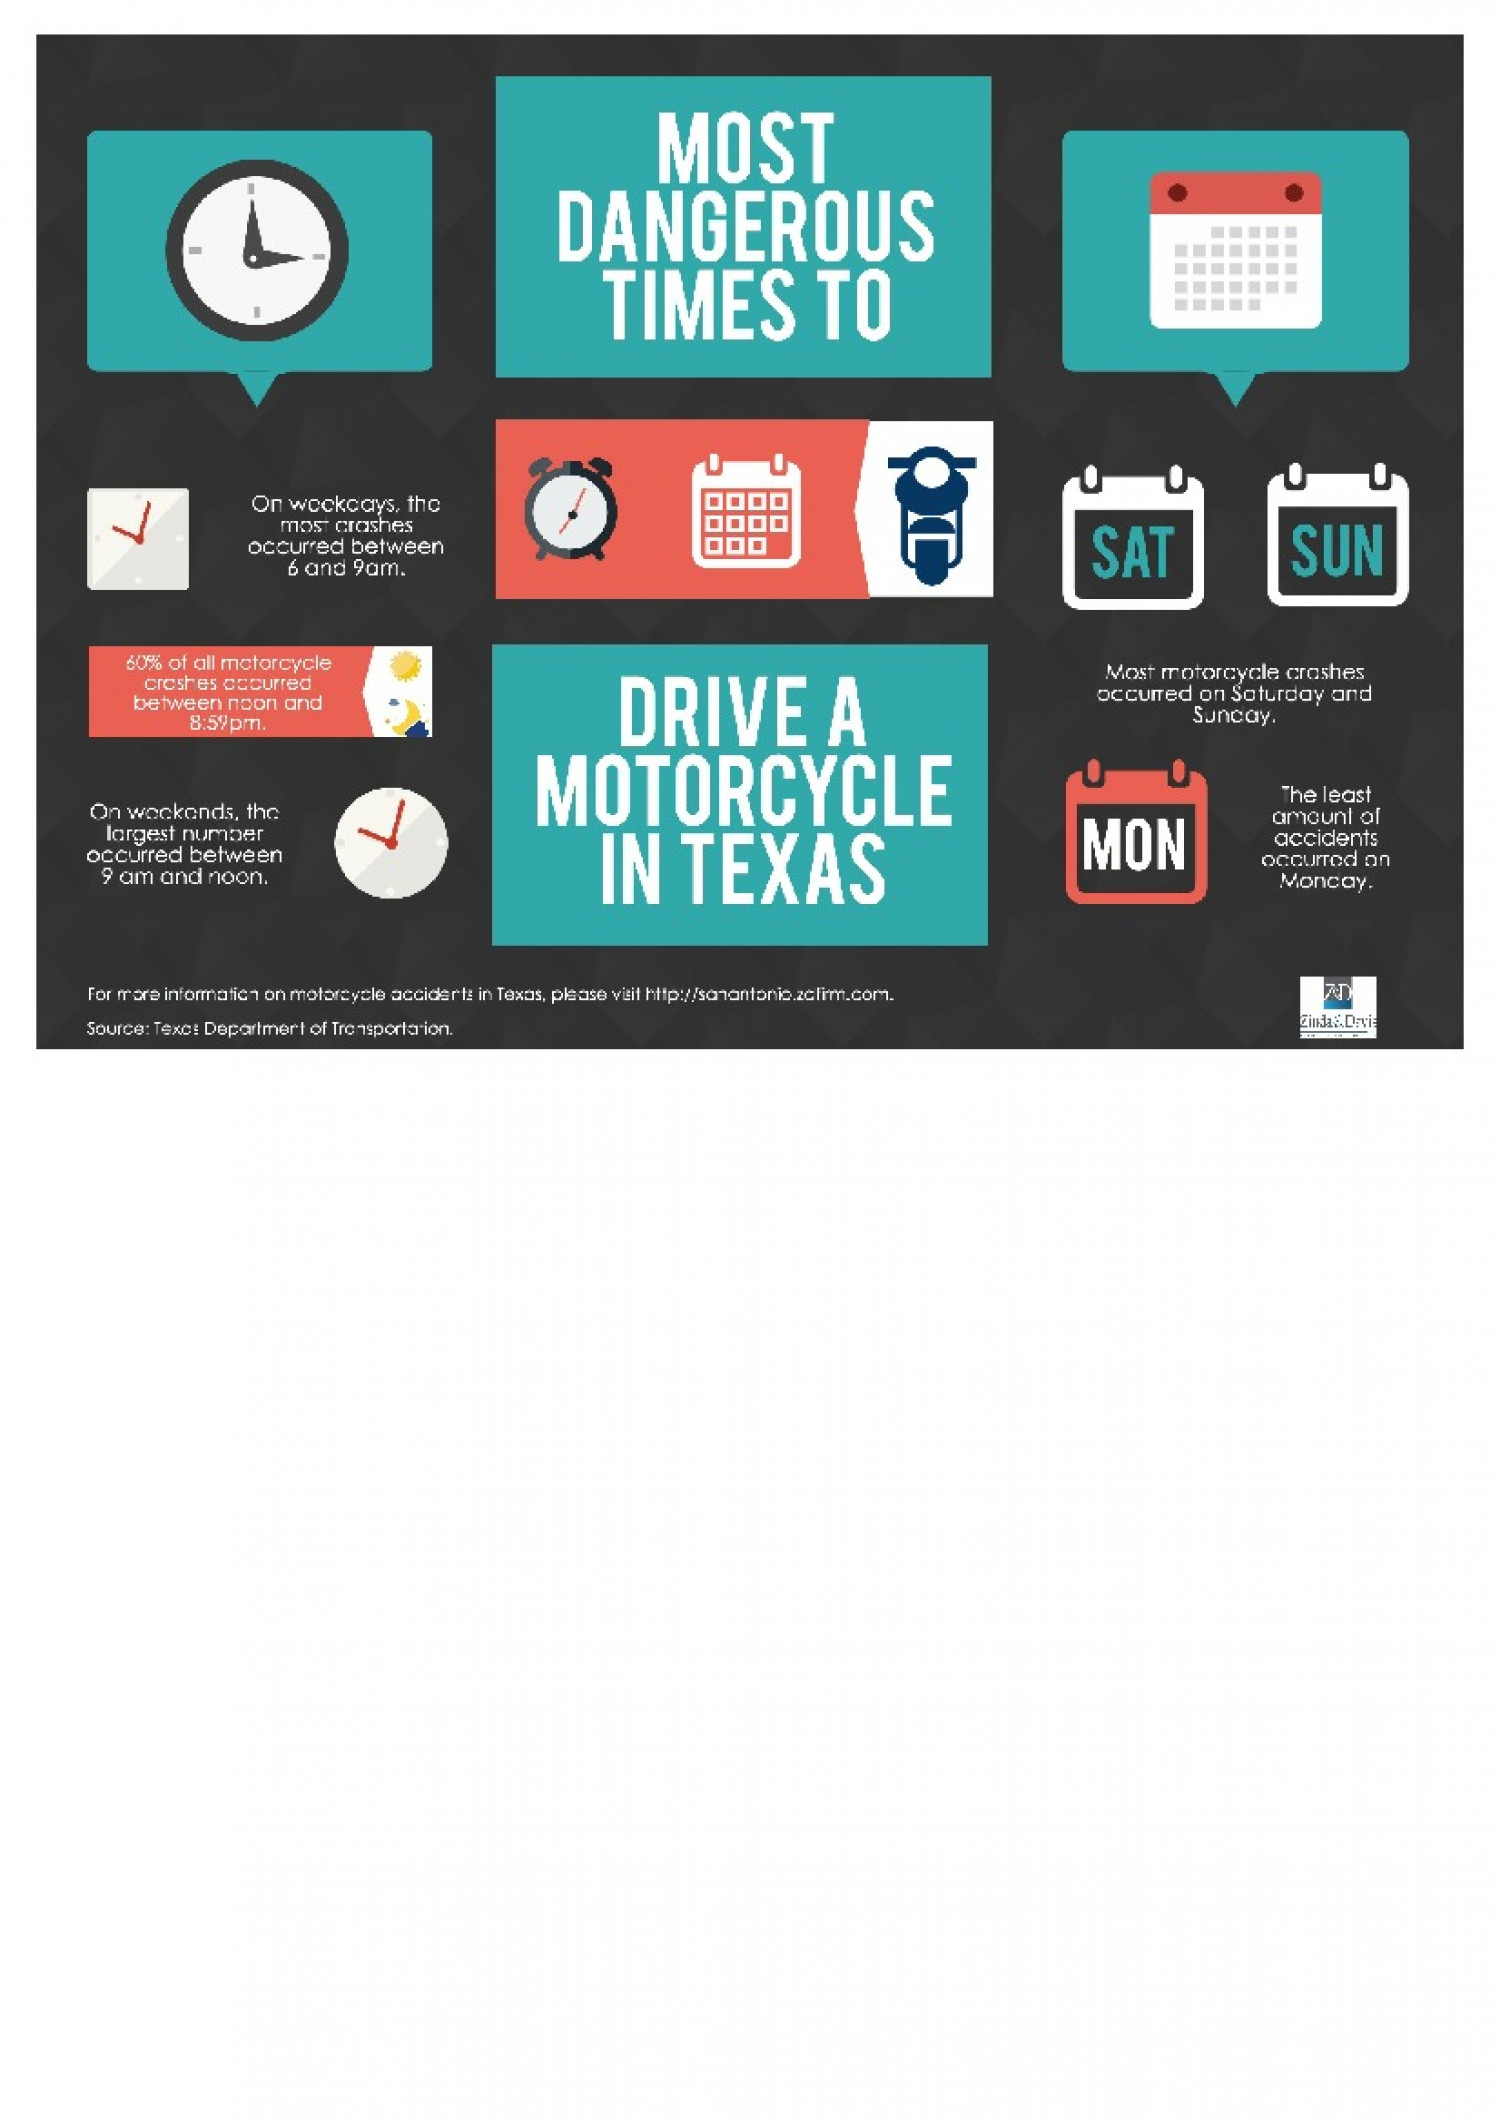 The Most Dangerous Times To Drive A Motorcycle in Texas Infographic